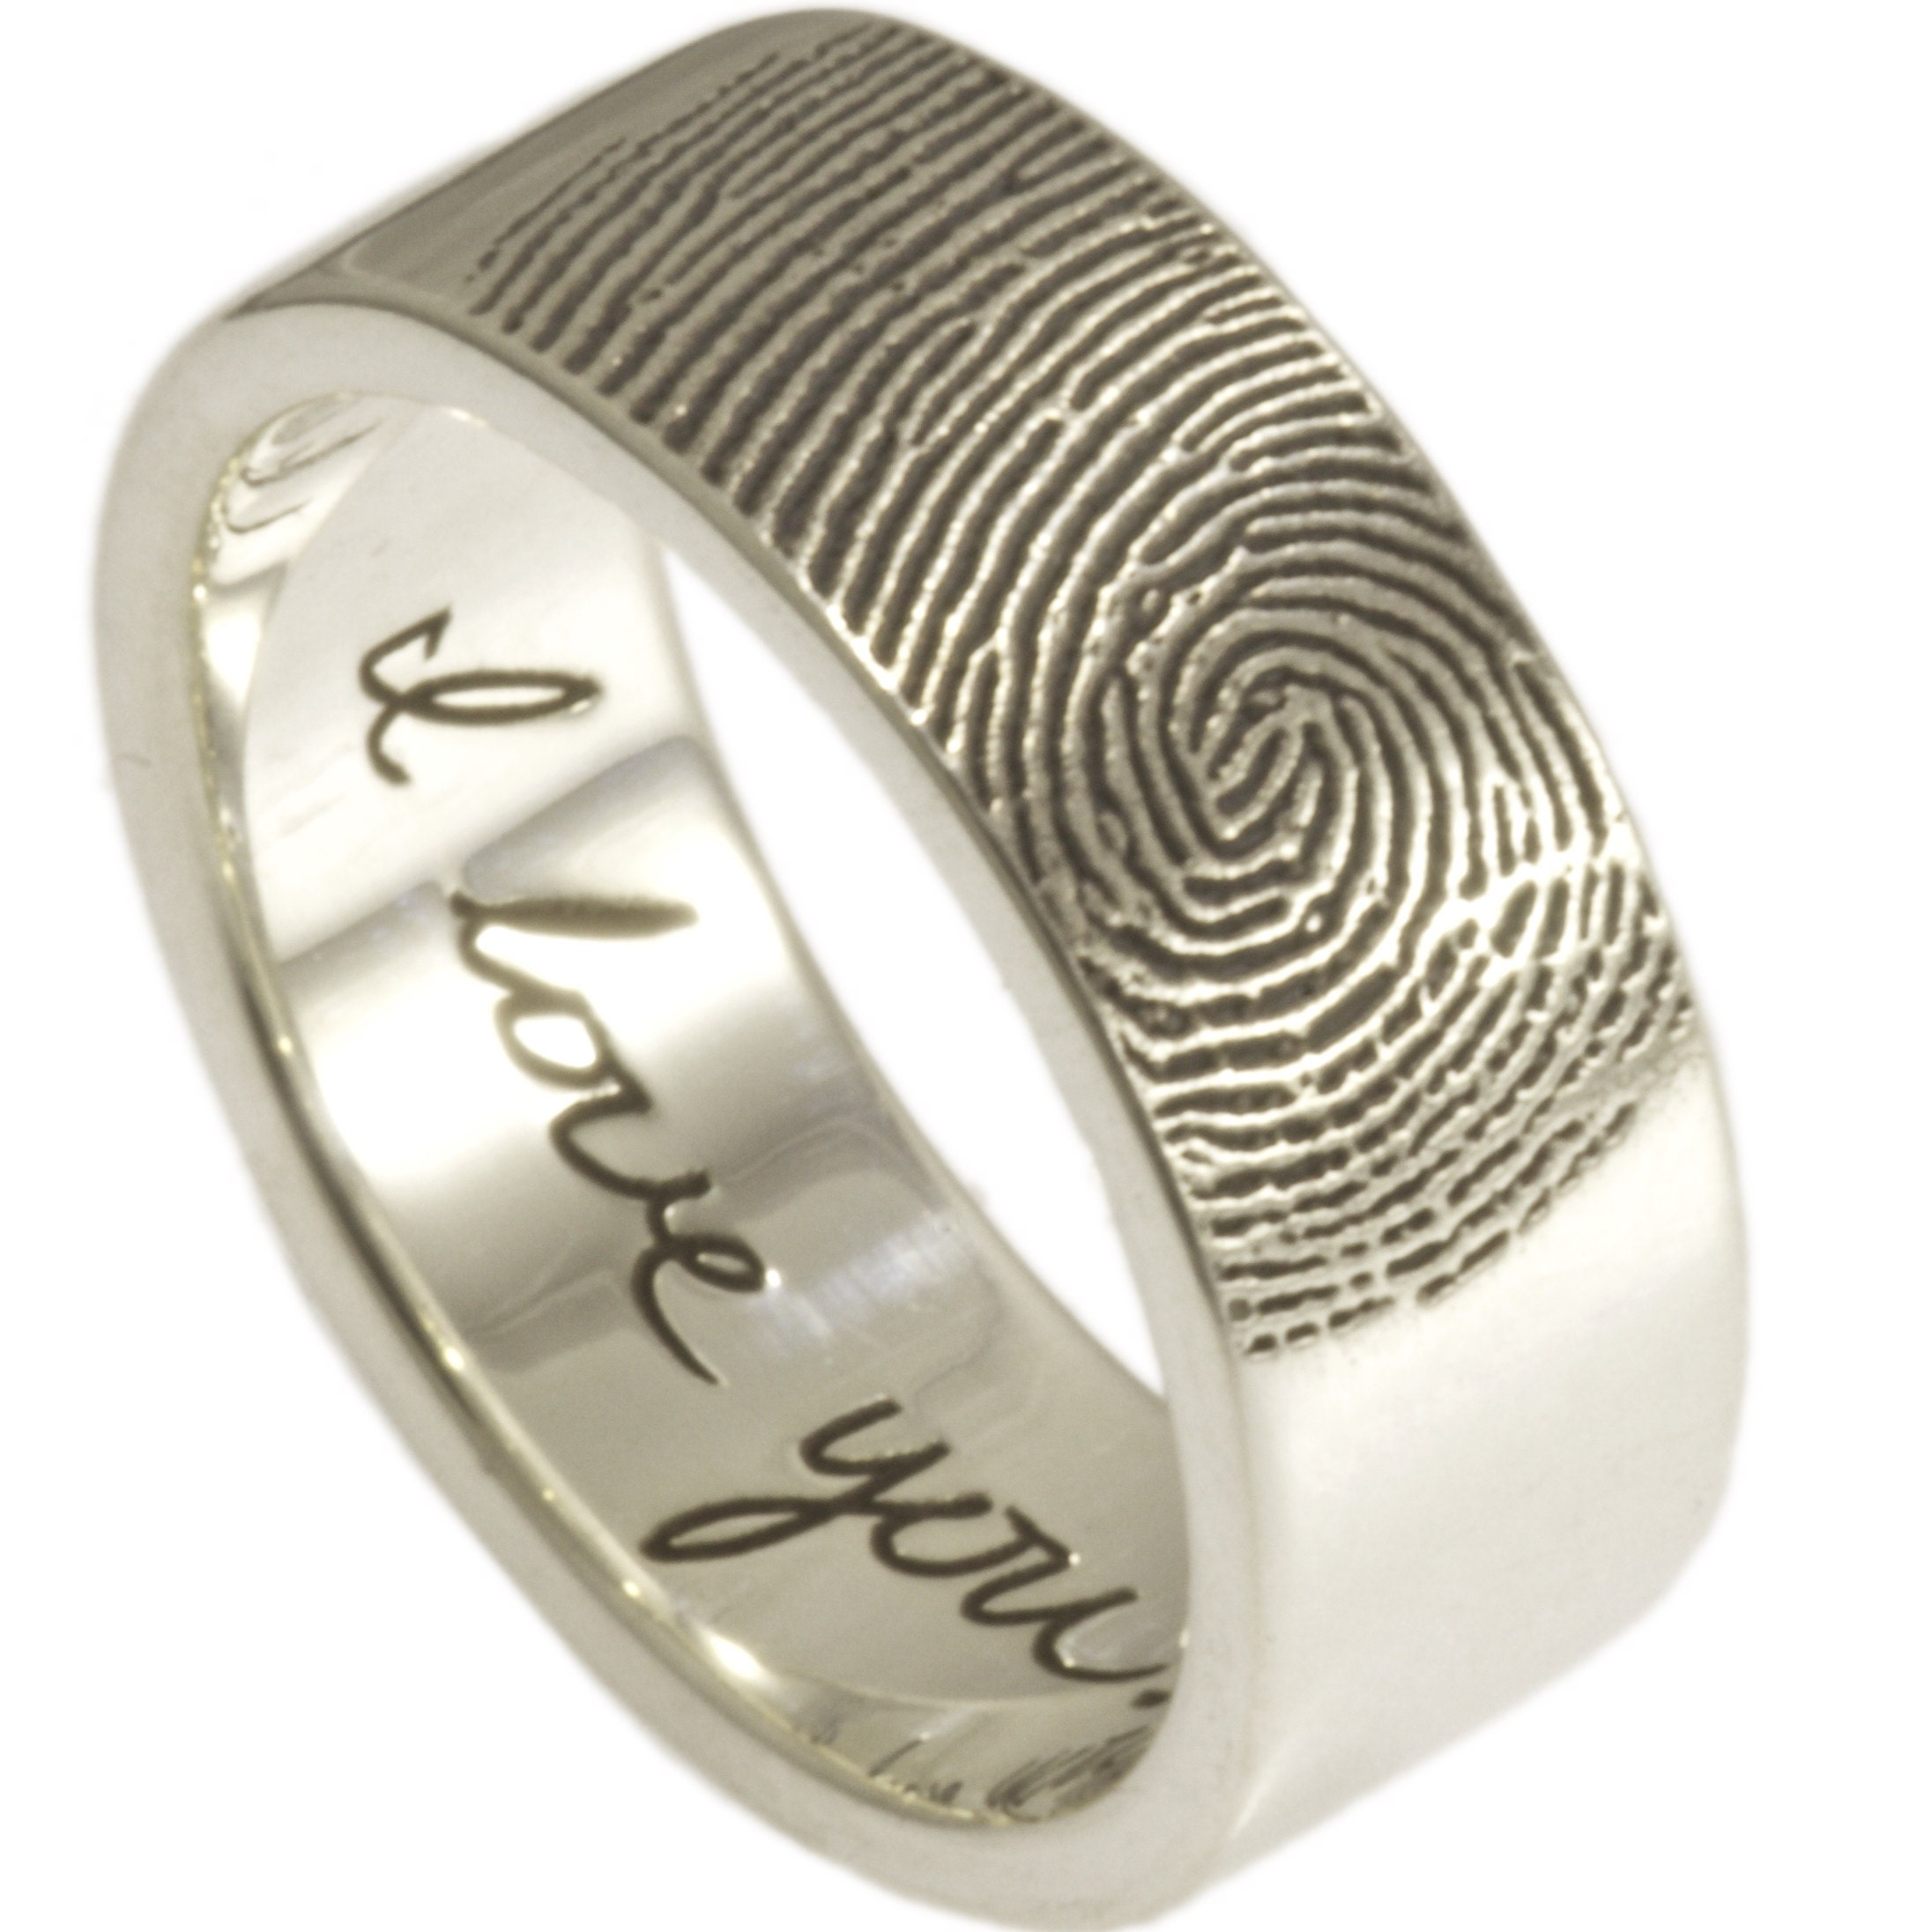 Custom Fingerprint Jewelry by Brent & Jessica by fabuluster